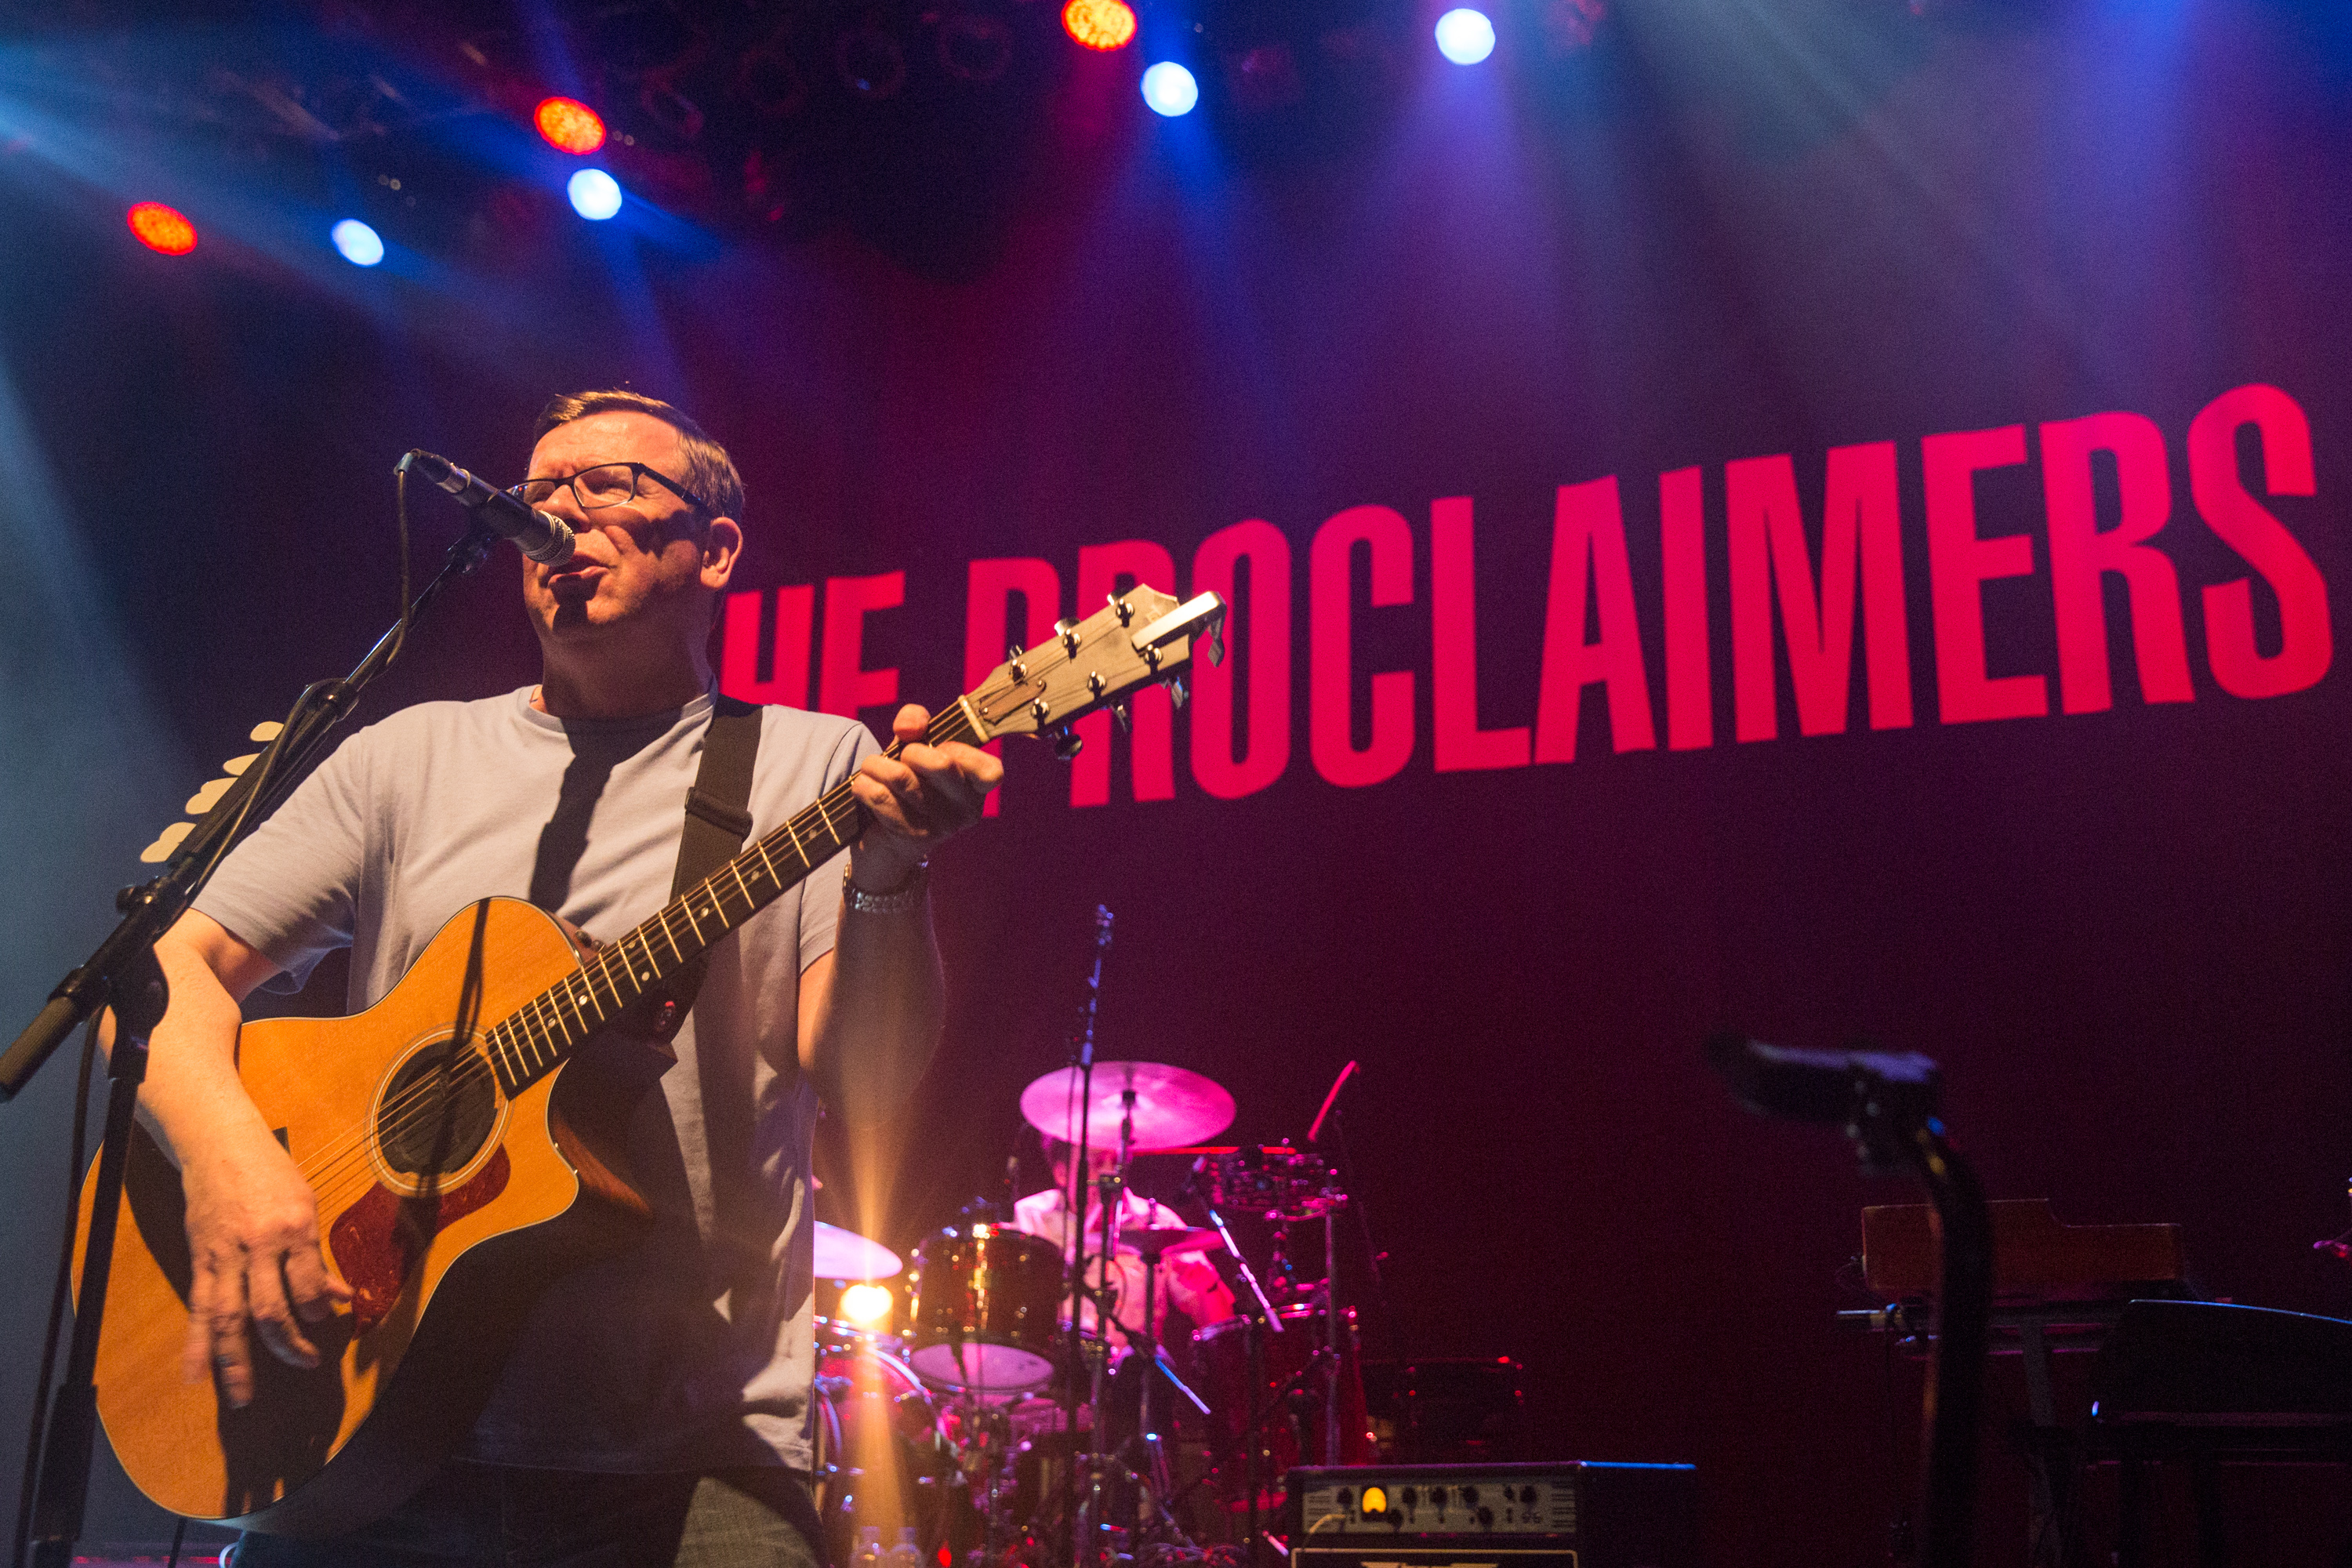 Charlie Reid of The Proclaimers performs at O2 Shepherd's Bush Empire on November 5, 2015 in London. Photo: Getty Images